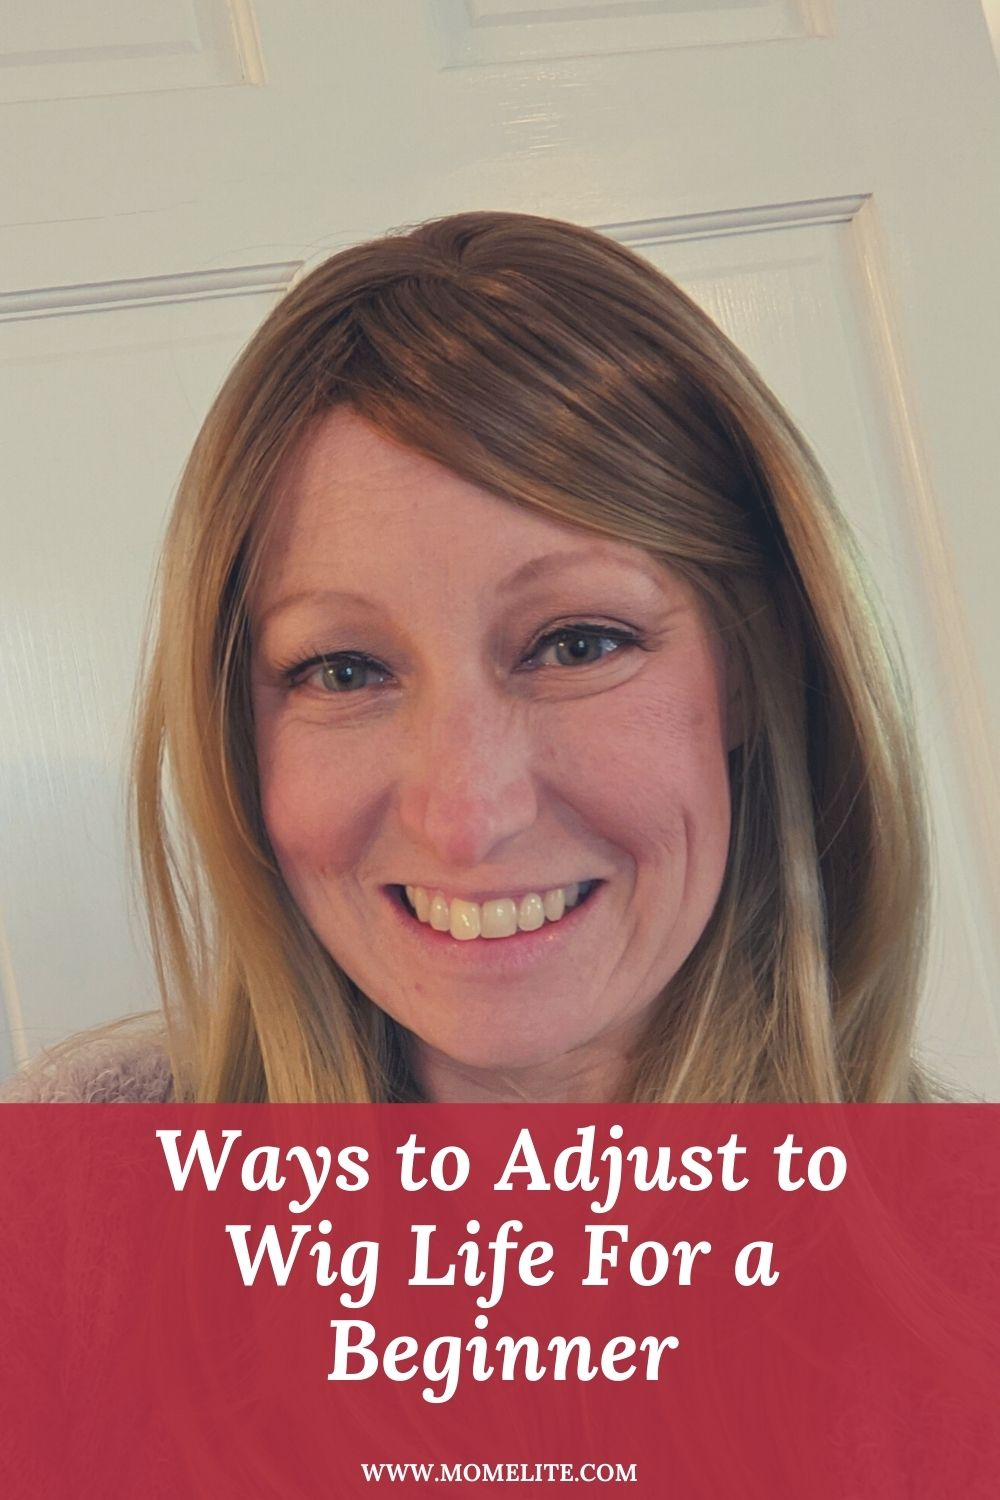 Ways to Adjust to Wig Life For a Beginner